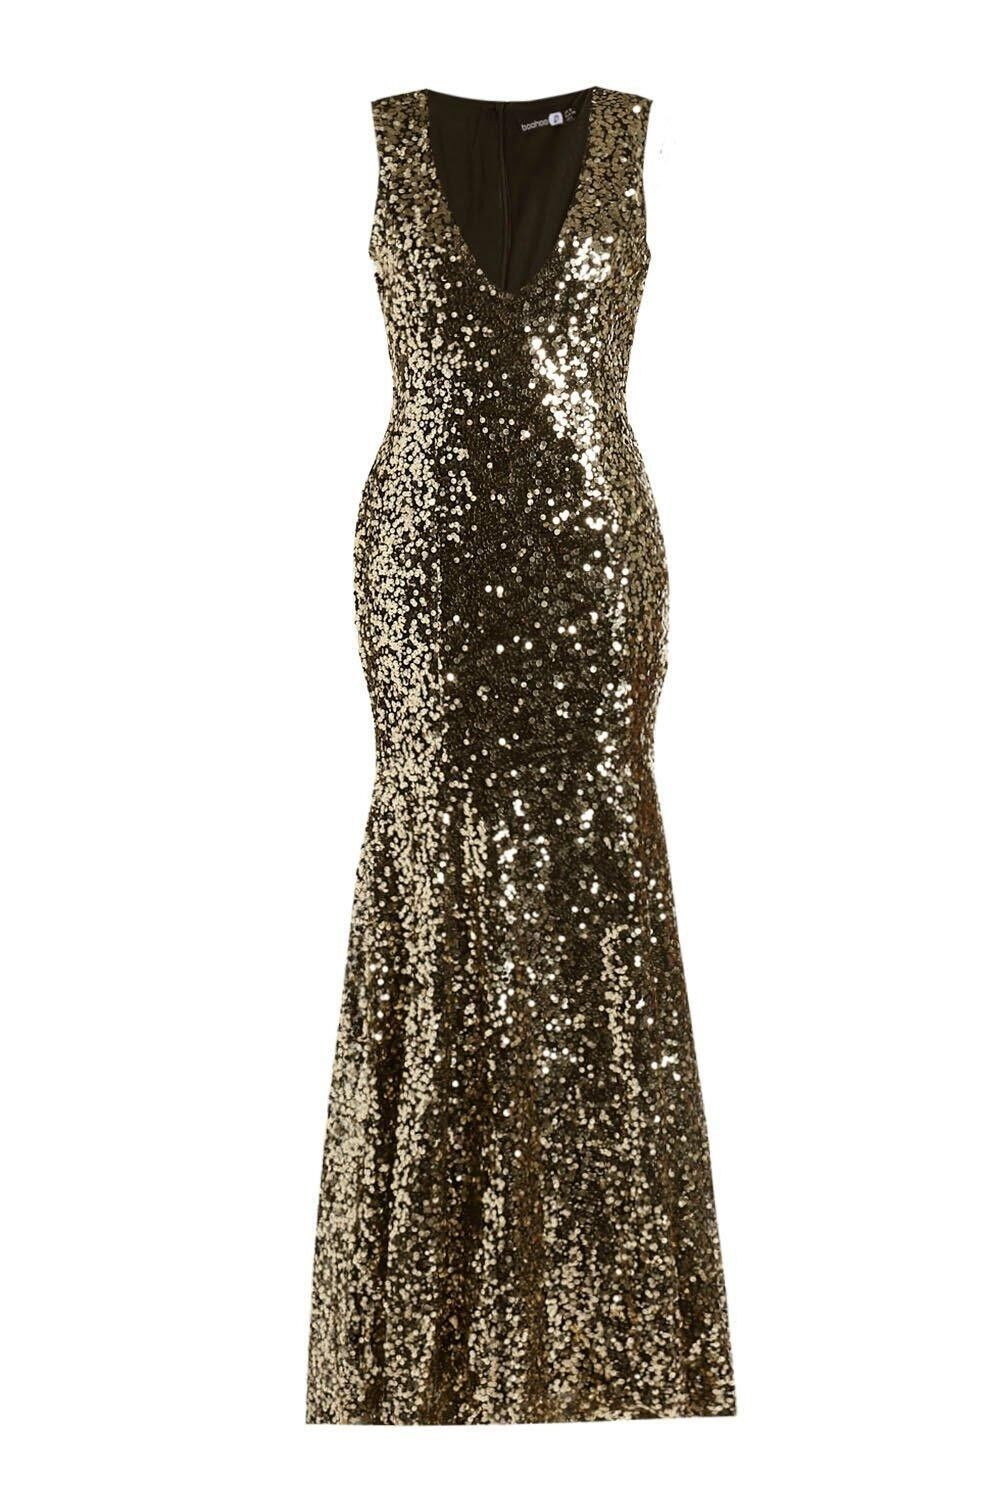 BNWT Boohoo  Size 10 gold Sequin Fishtail Maxi Prom Gown Dress new